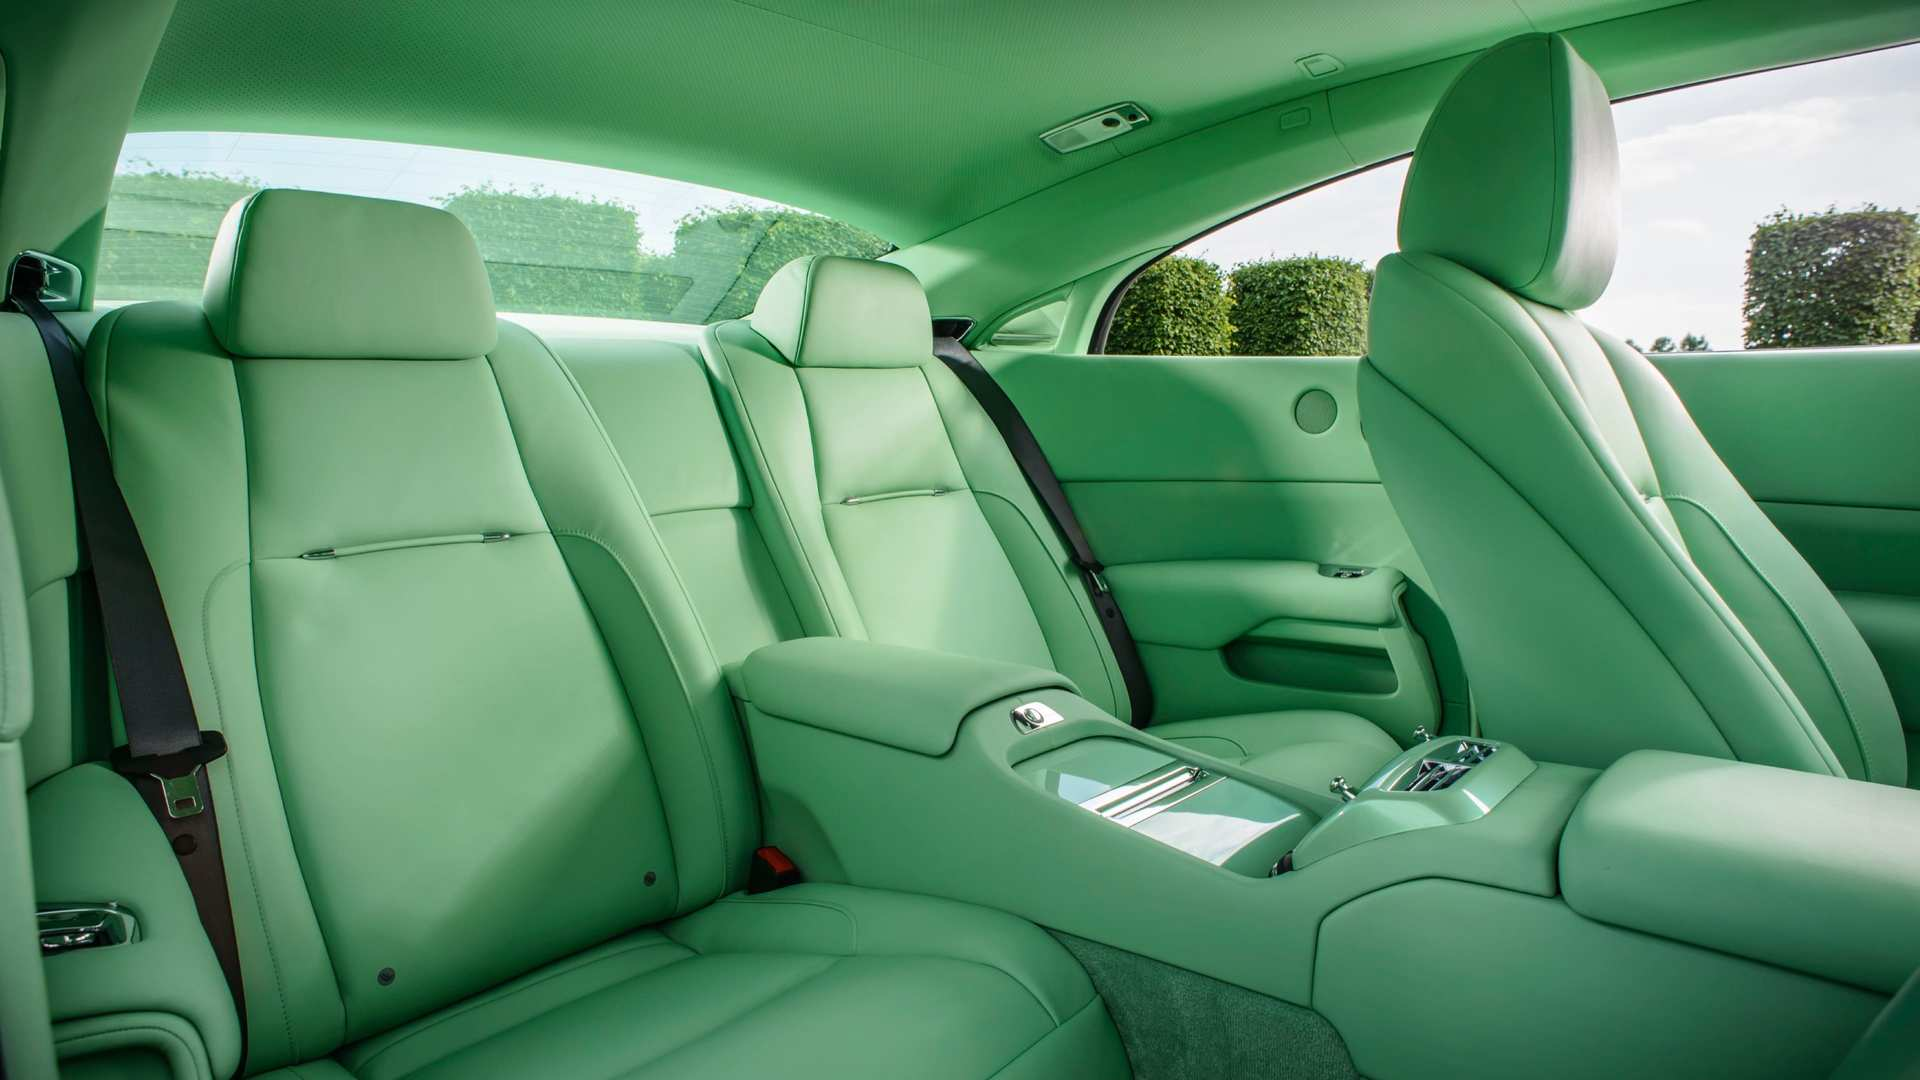 Rolls-Royce Wraith Michael Fux commission, front interior, medium close up, lime green seats